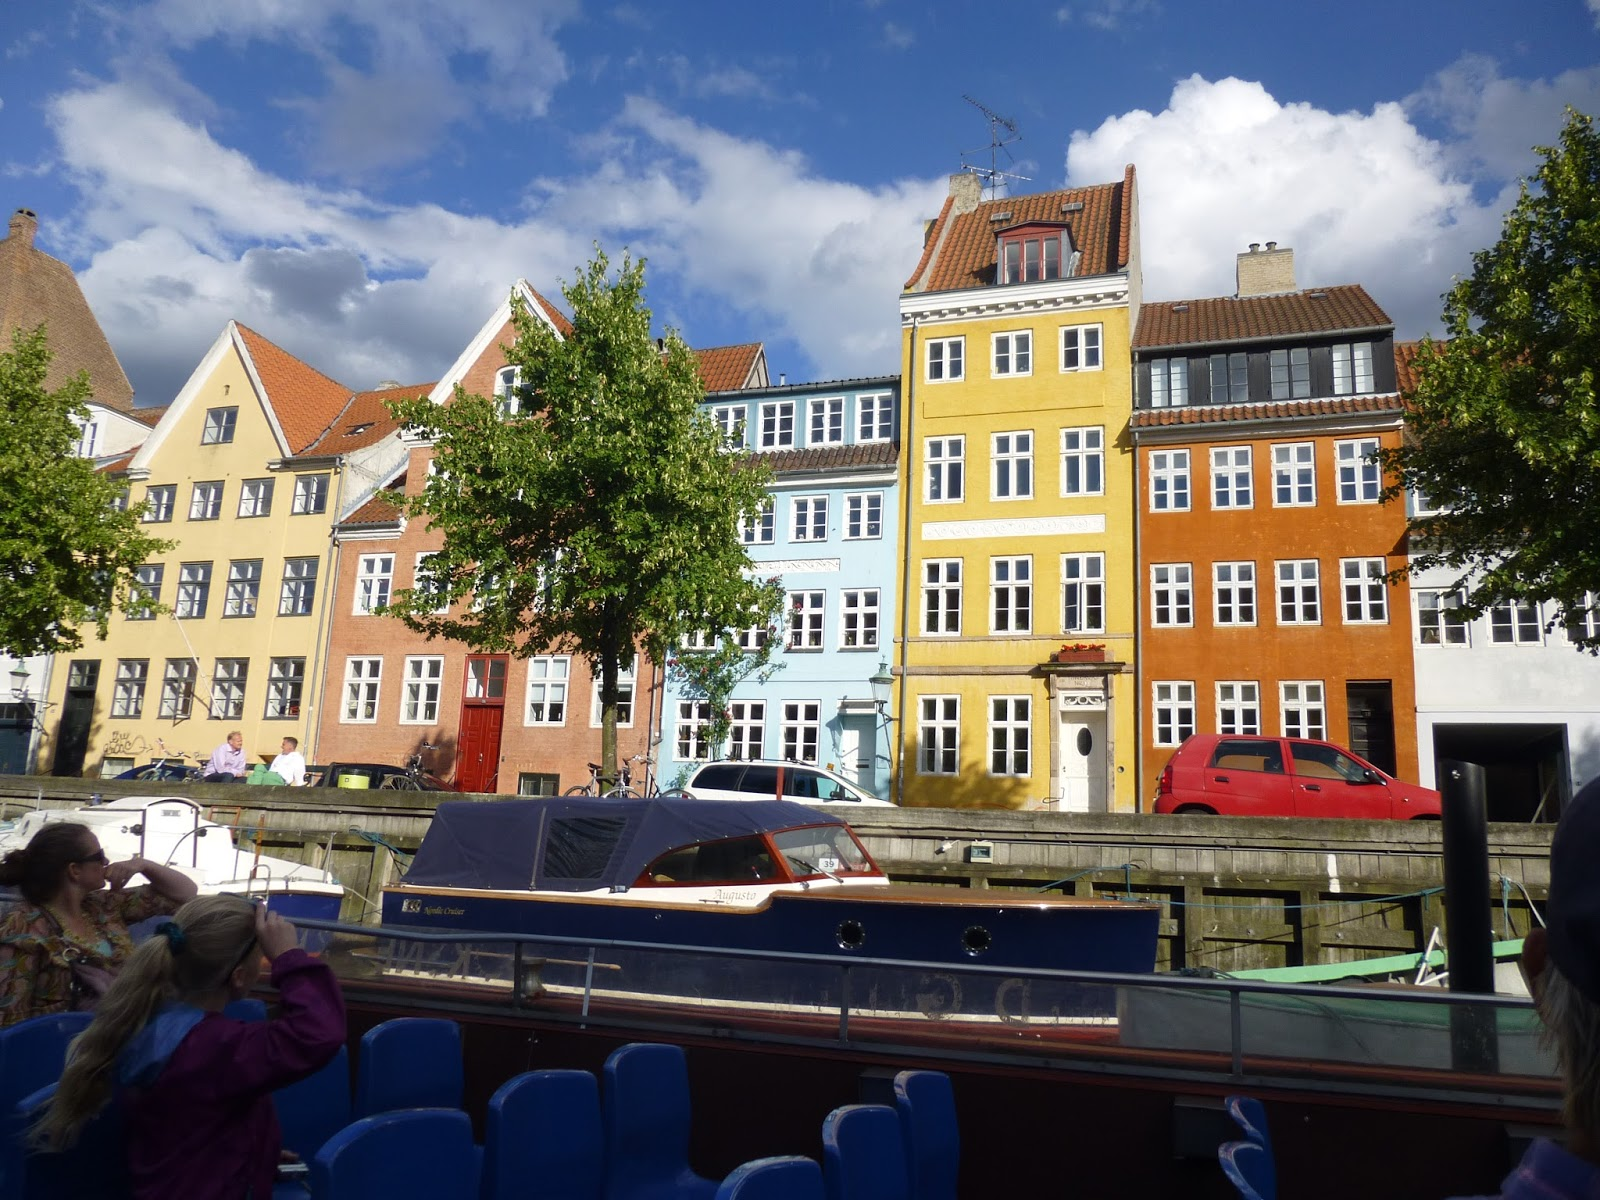 Converted wharehouses on canal